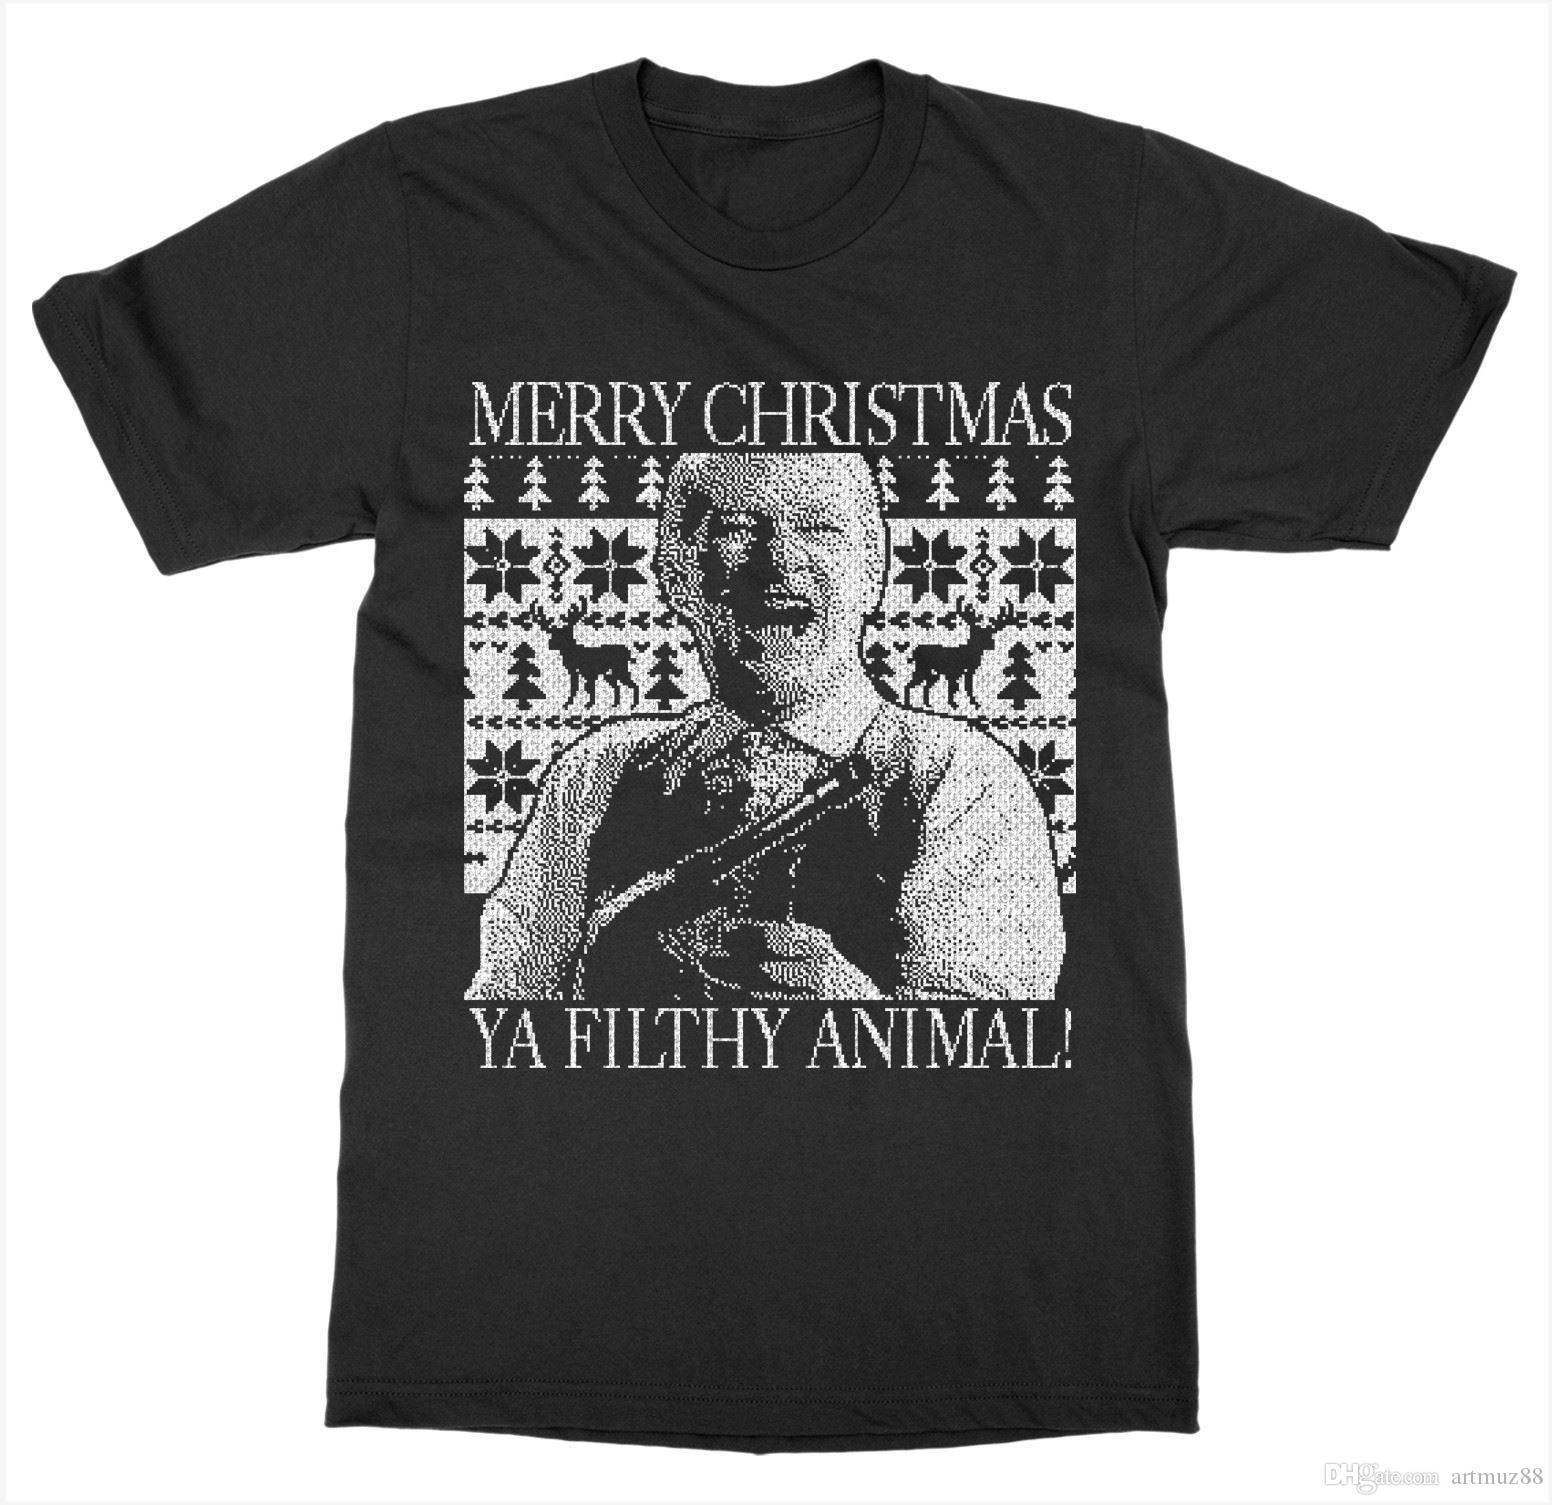 d0a282b4 Ya Filthy Animal 'Home Alone' T Shirt Holiday Movie Christmas Xmas Santa  Gift Crazy T Shirts Designs Ridiculous T Shirt From Artmuz88, $10.76|  DHgate.Com